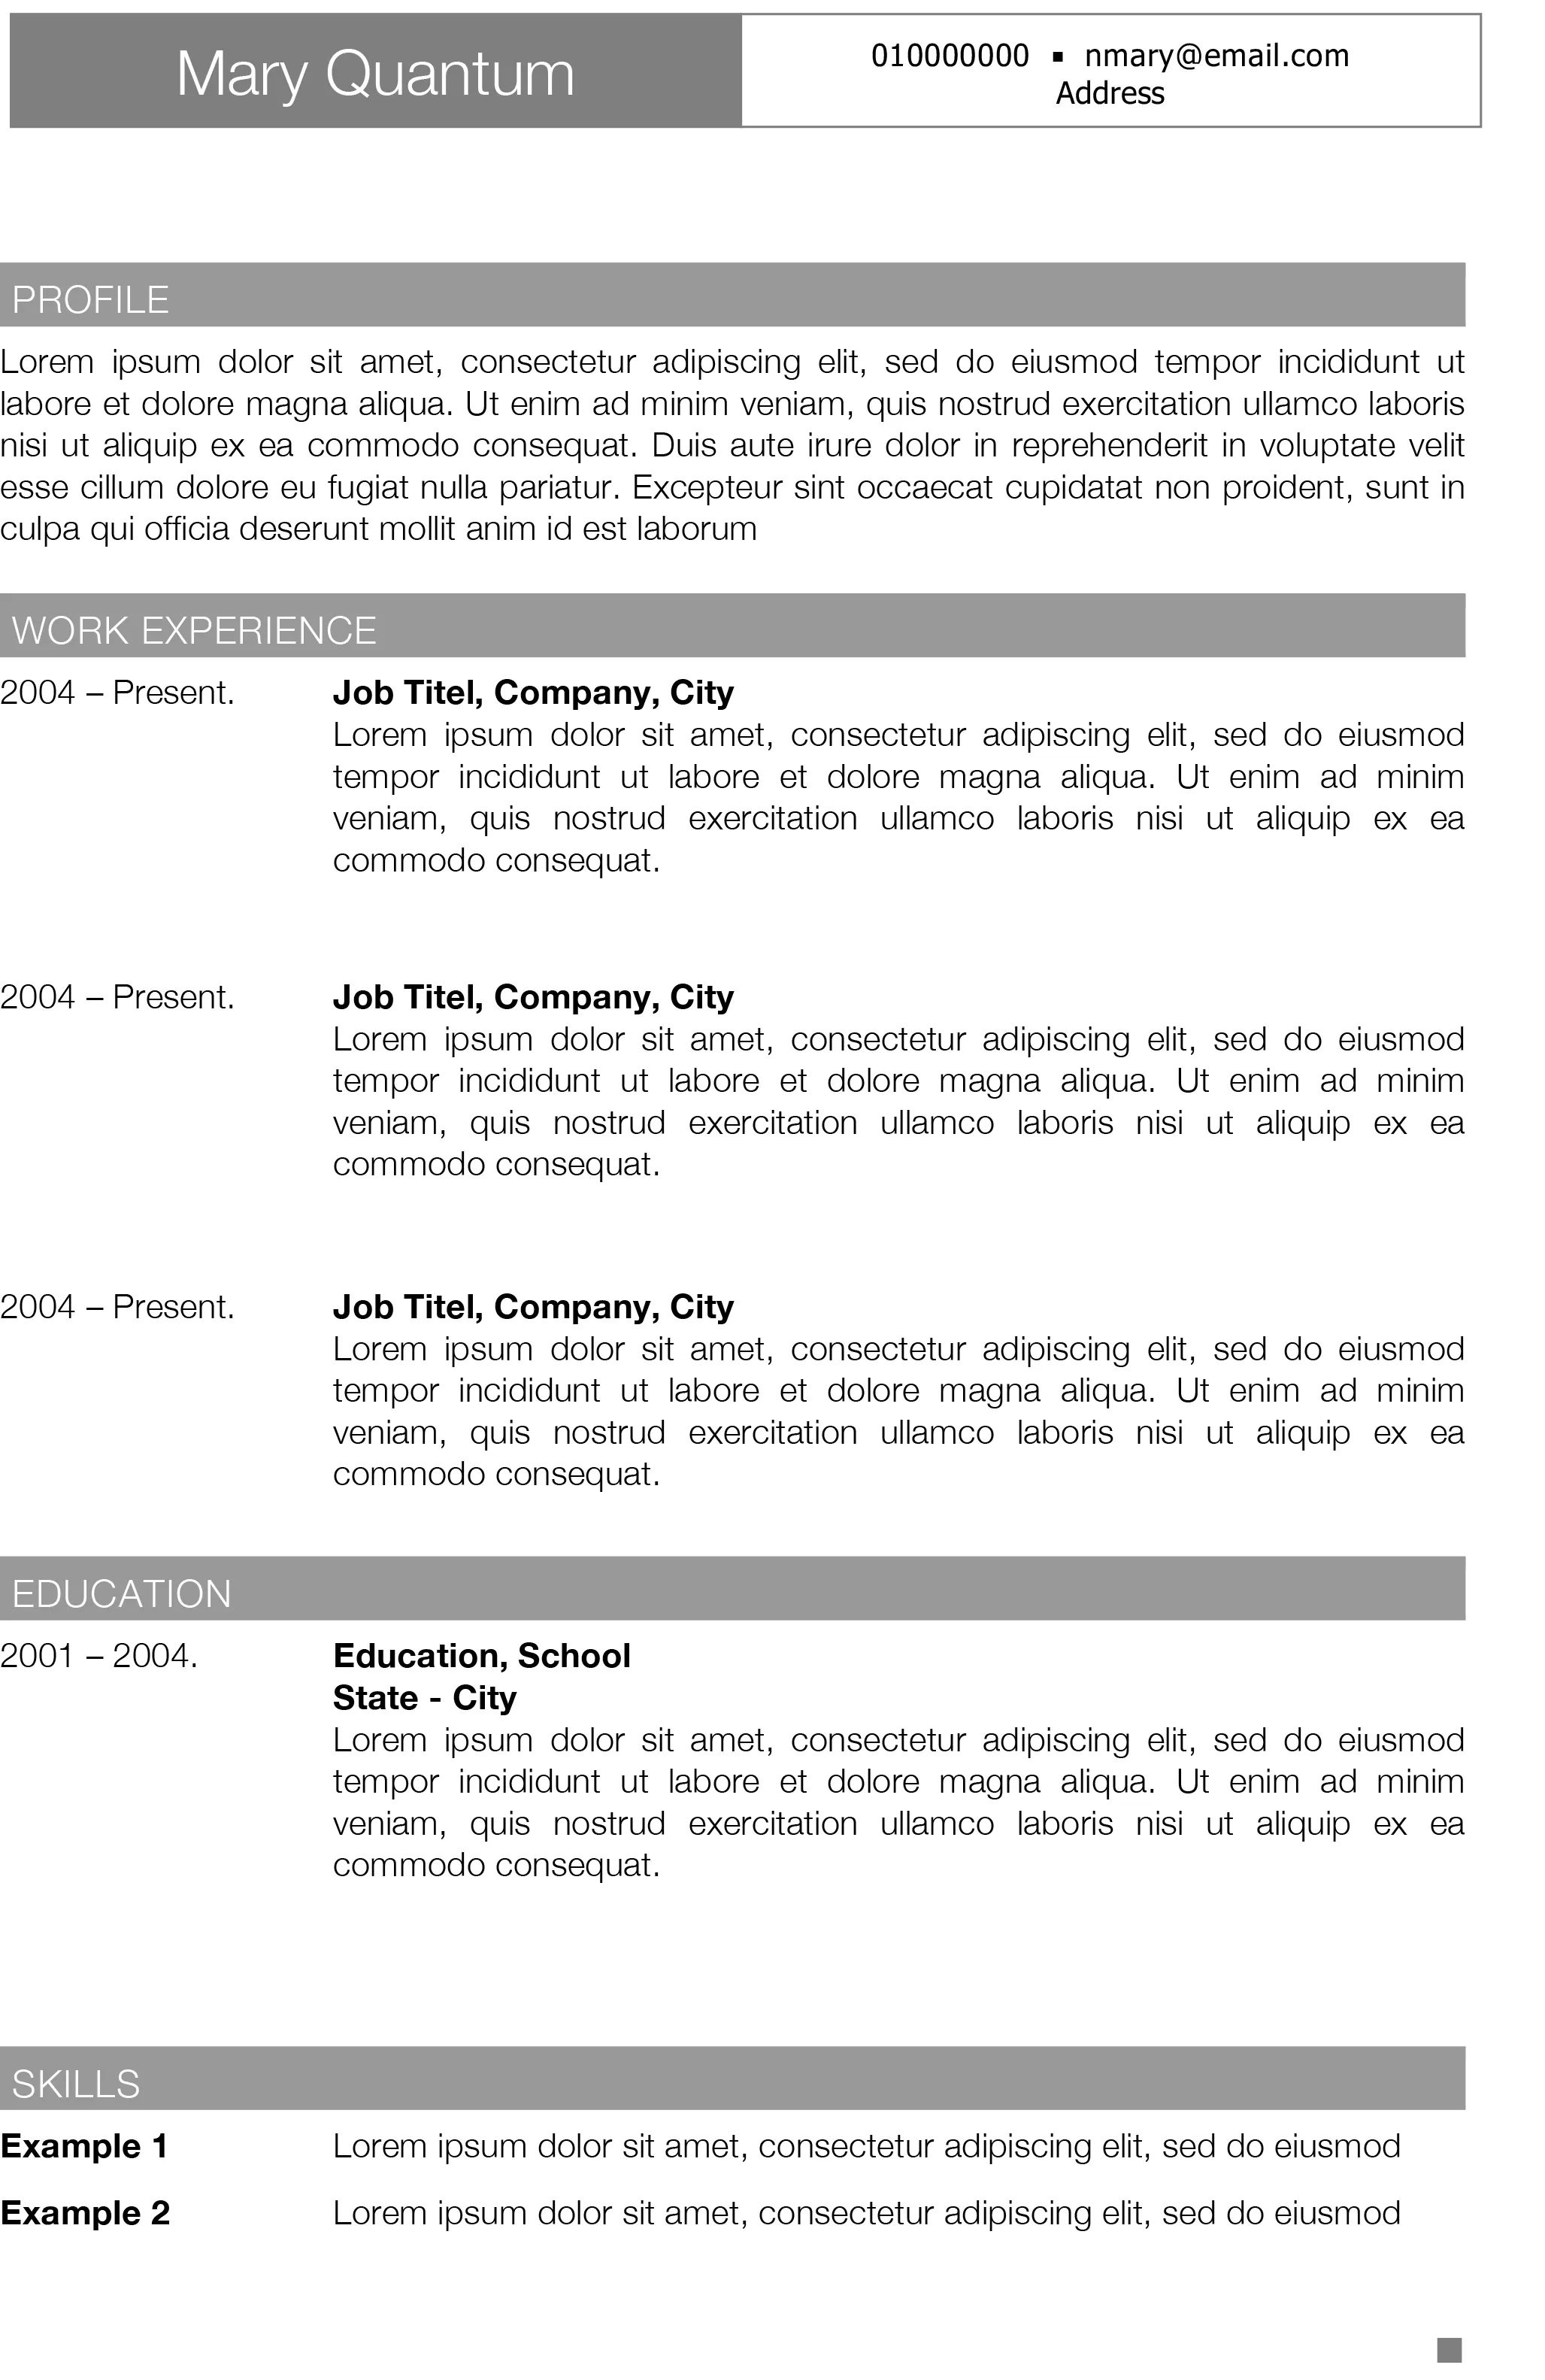 100 free resume templates download